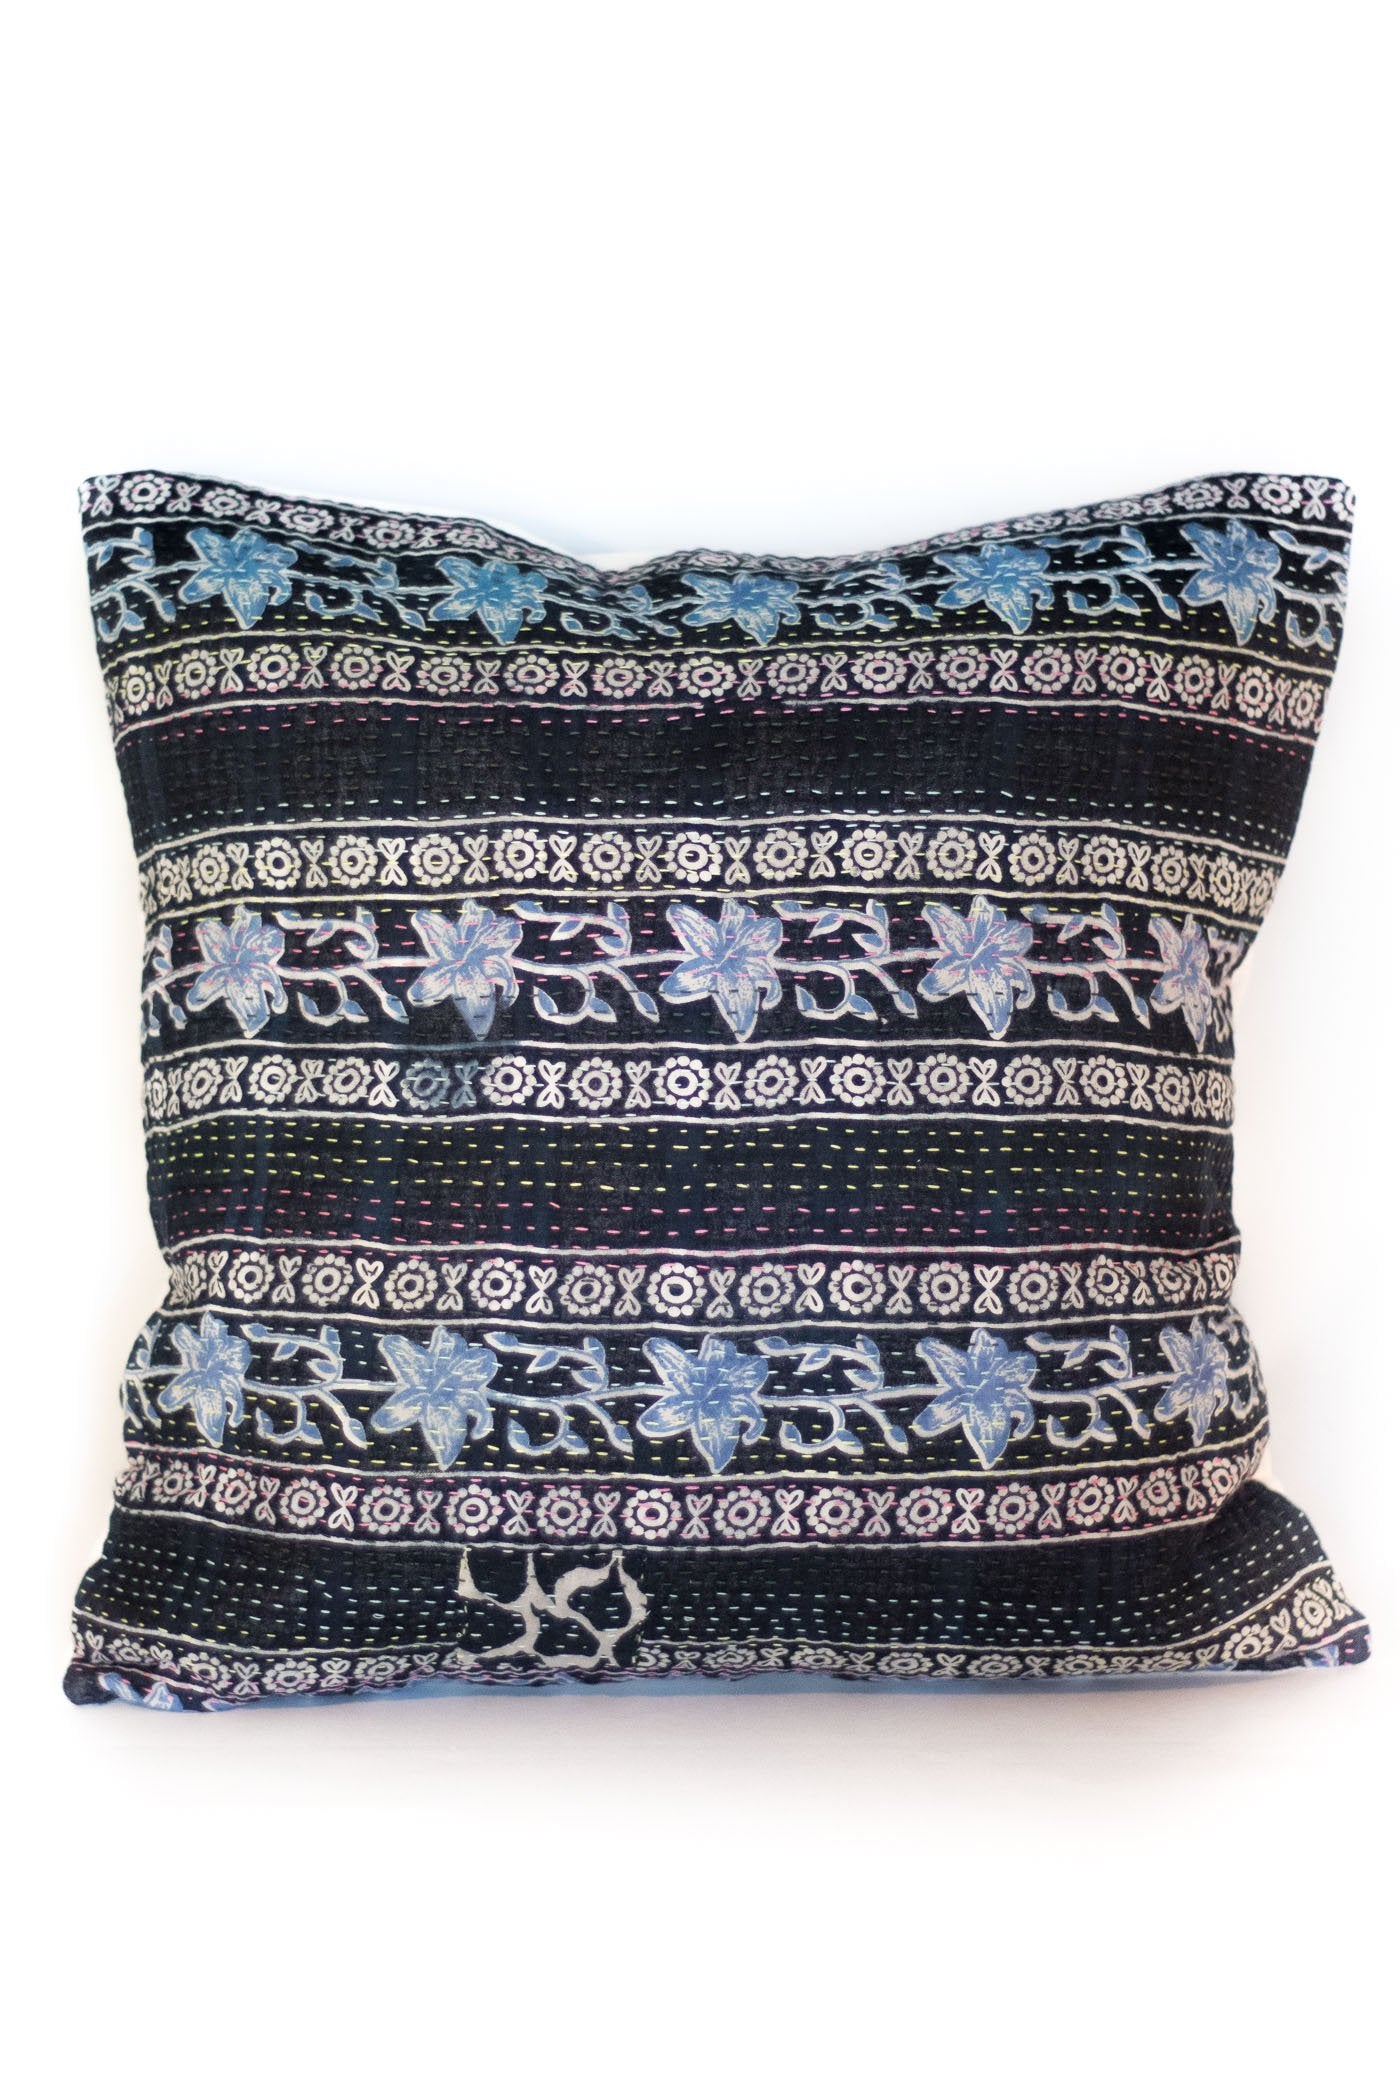 Decorative Pillow Makers : how to make a decorative pillow - Home Design And Decor